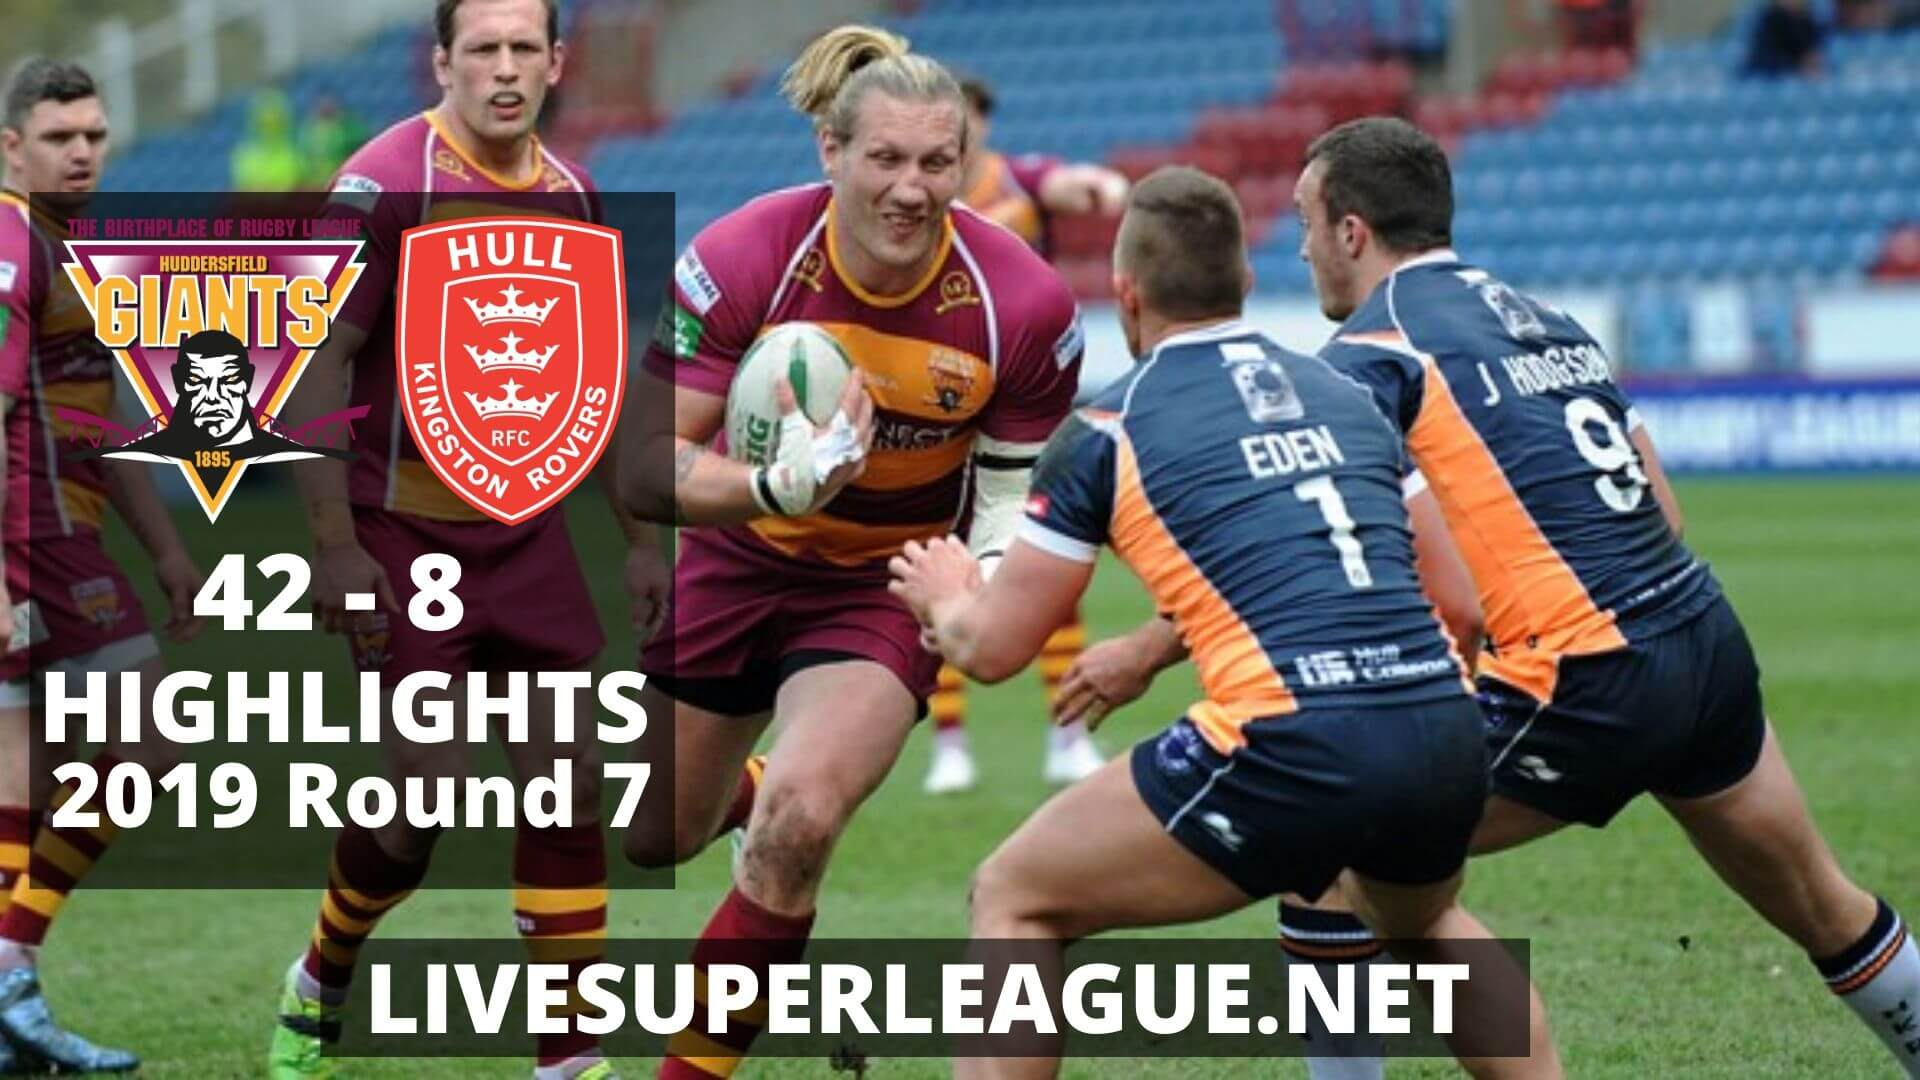 Huddersfield Giants vs Hull Kingston Rovers Highlights 2019 Round 7